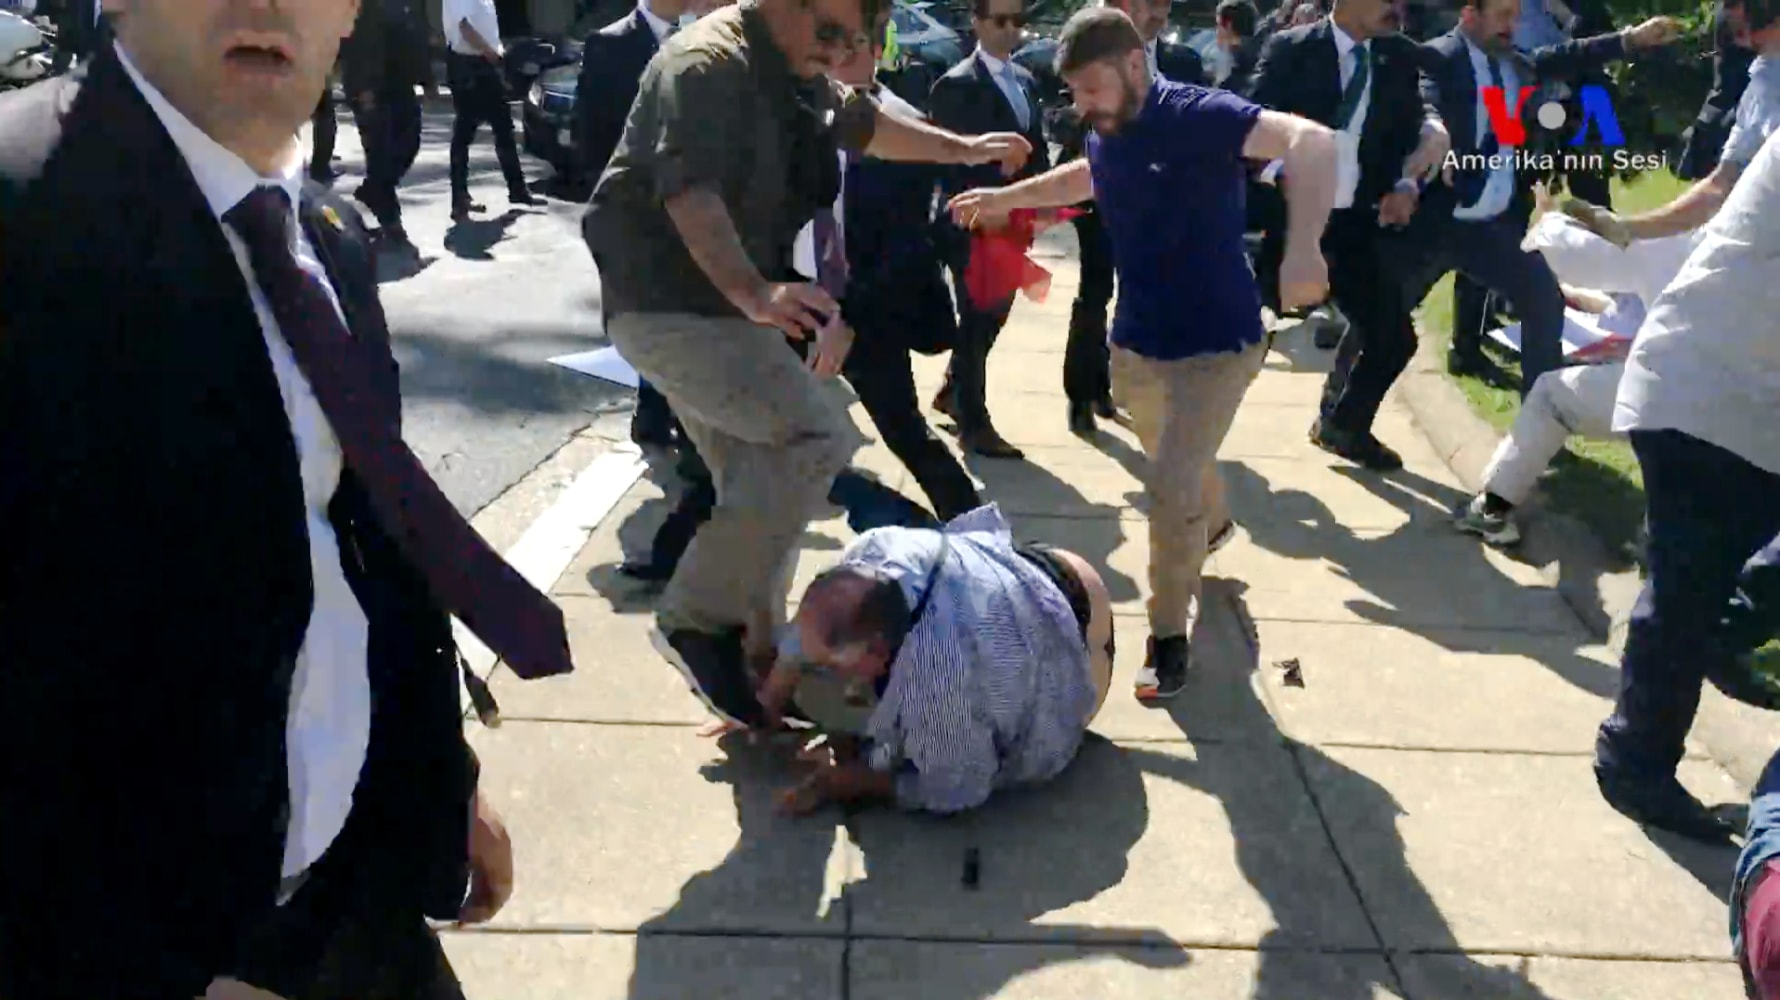 USA  summoned Turkish ambassador after protester violence